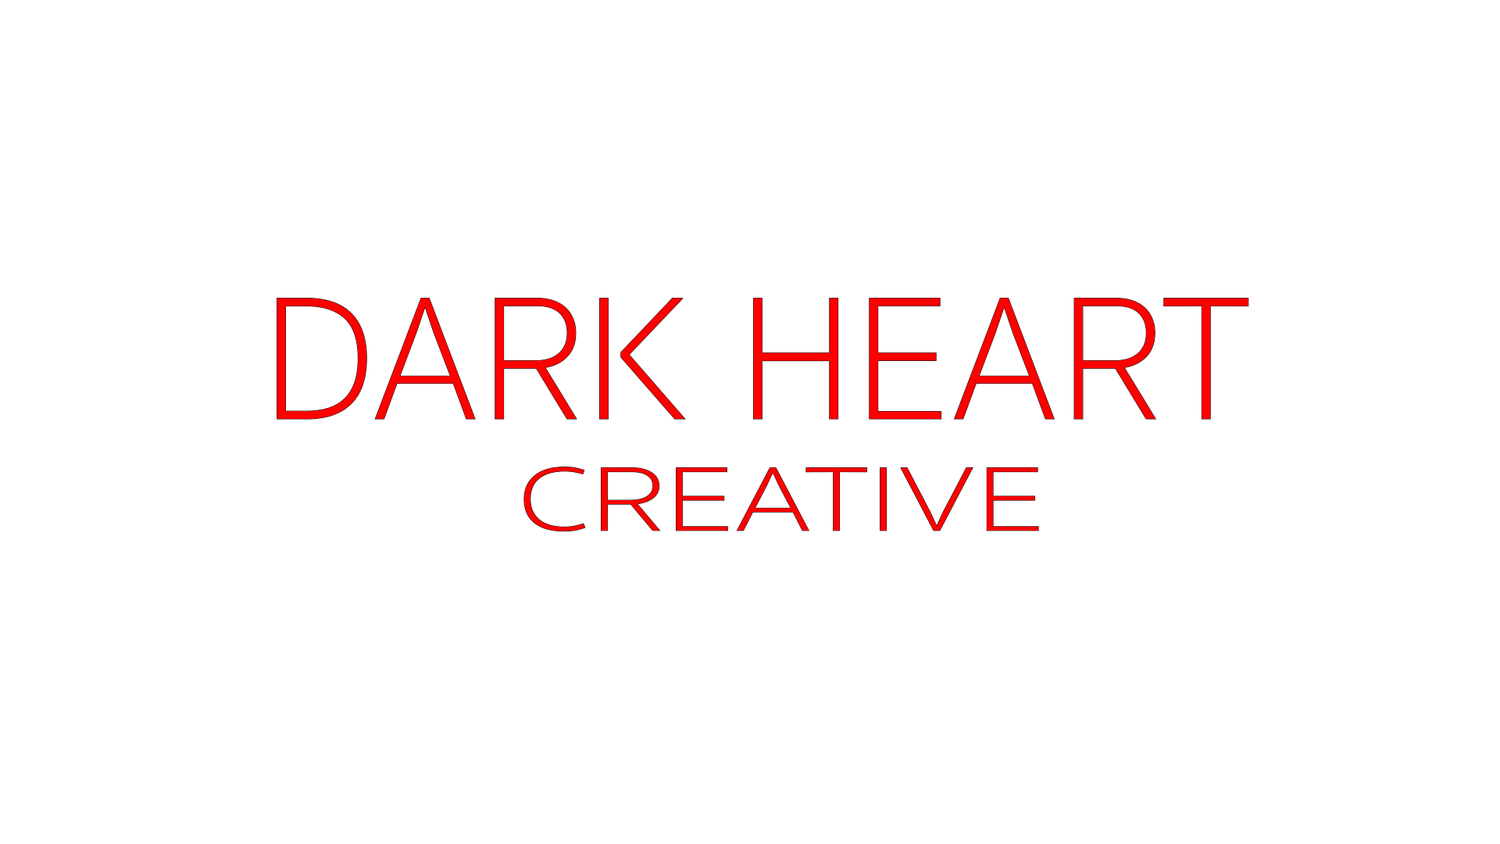 DARK HEART CREATIVE